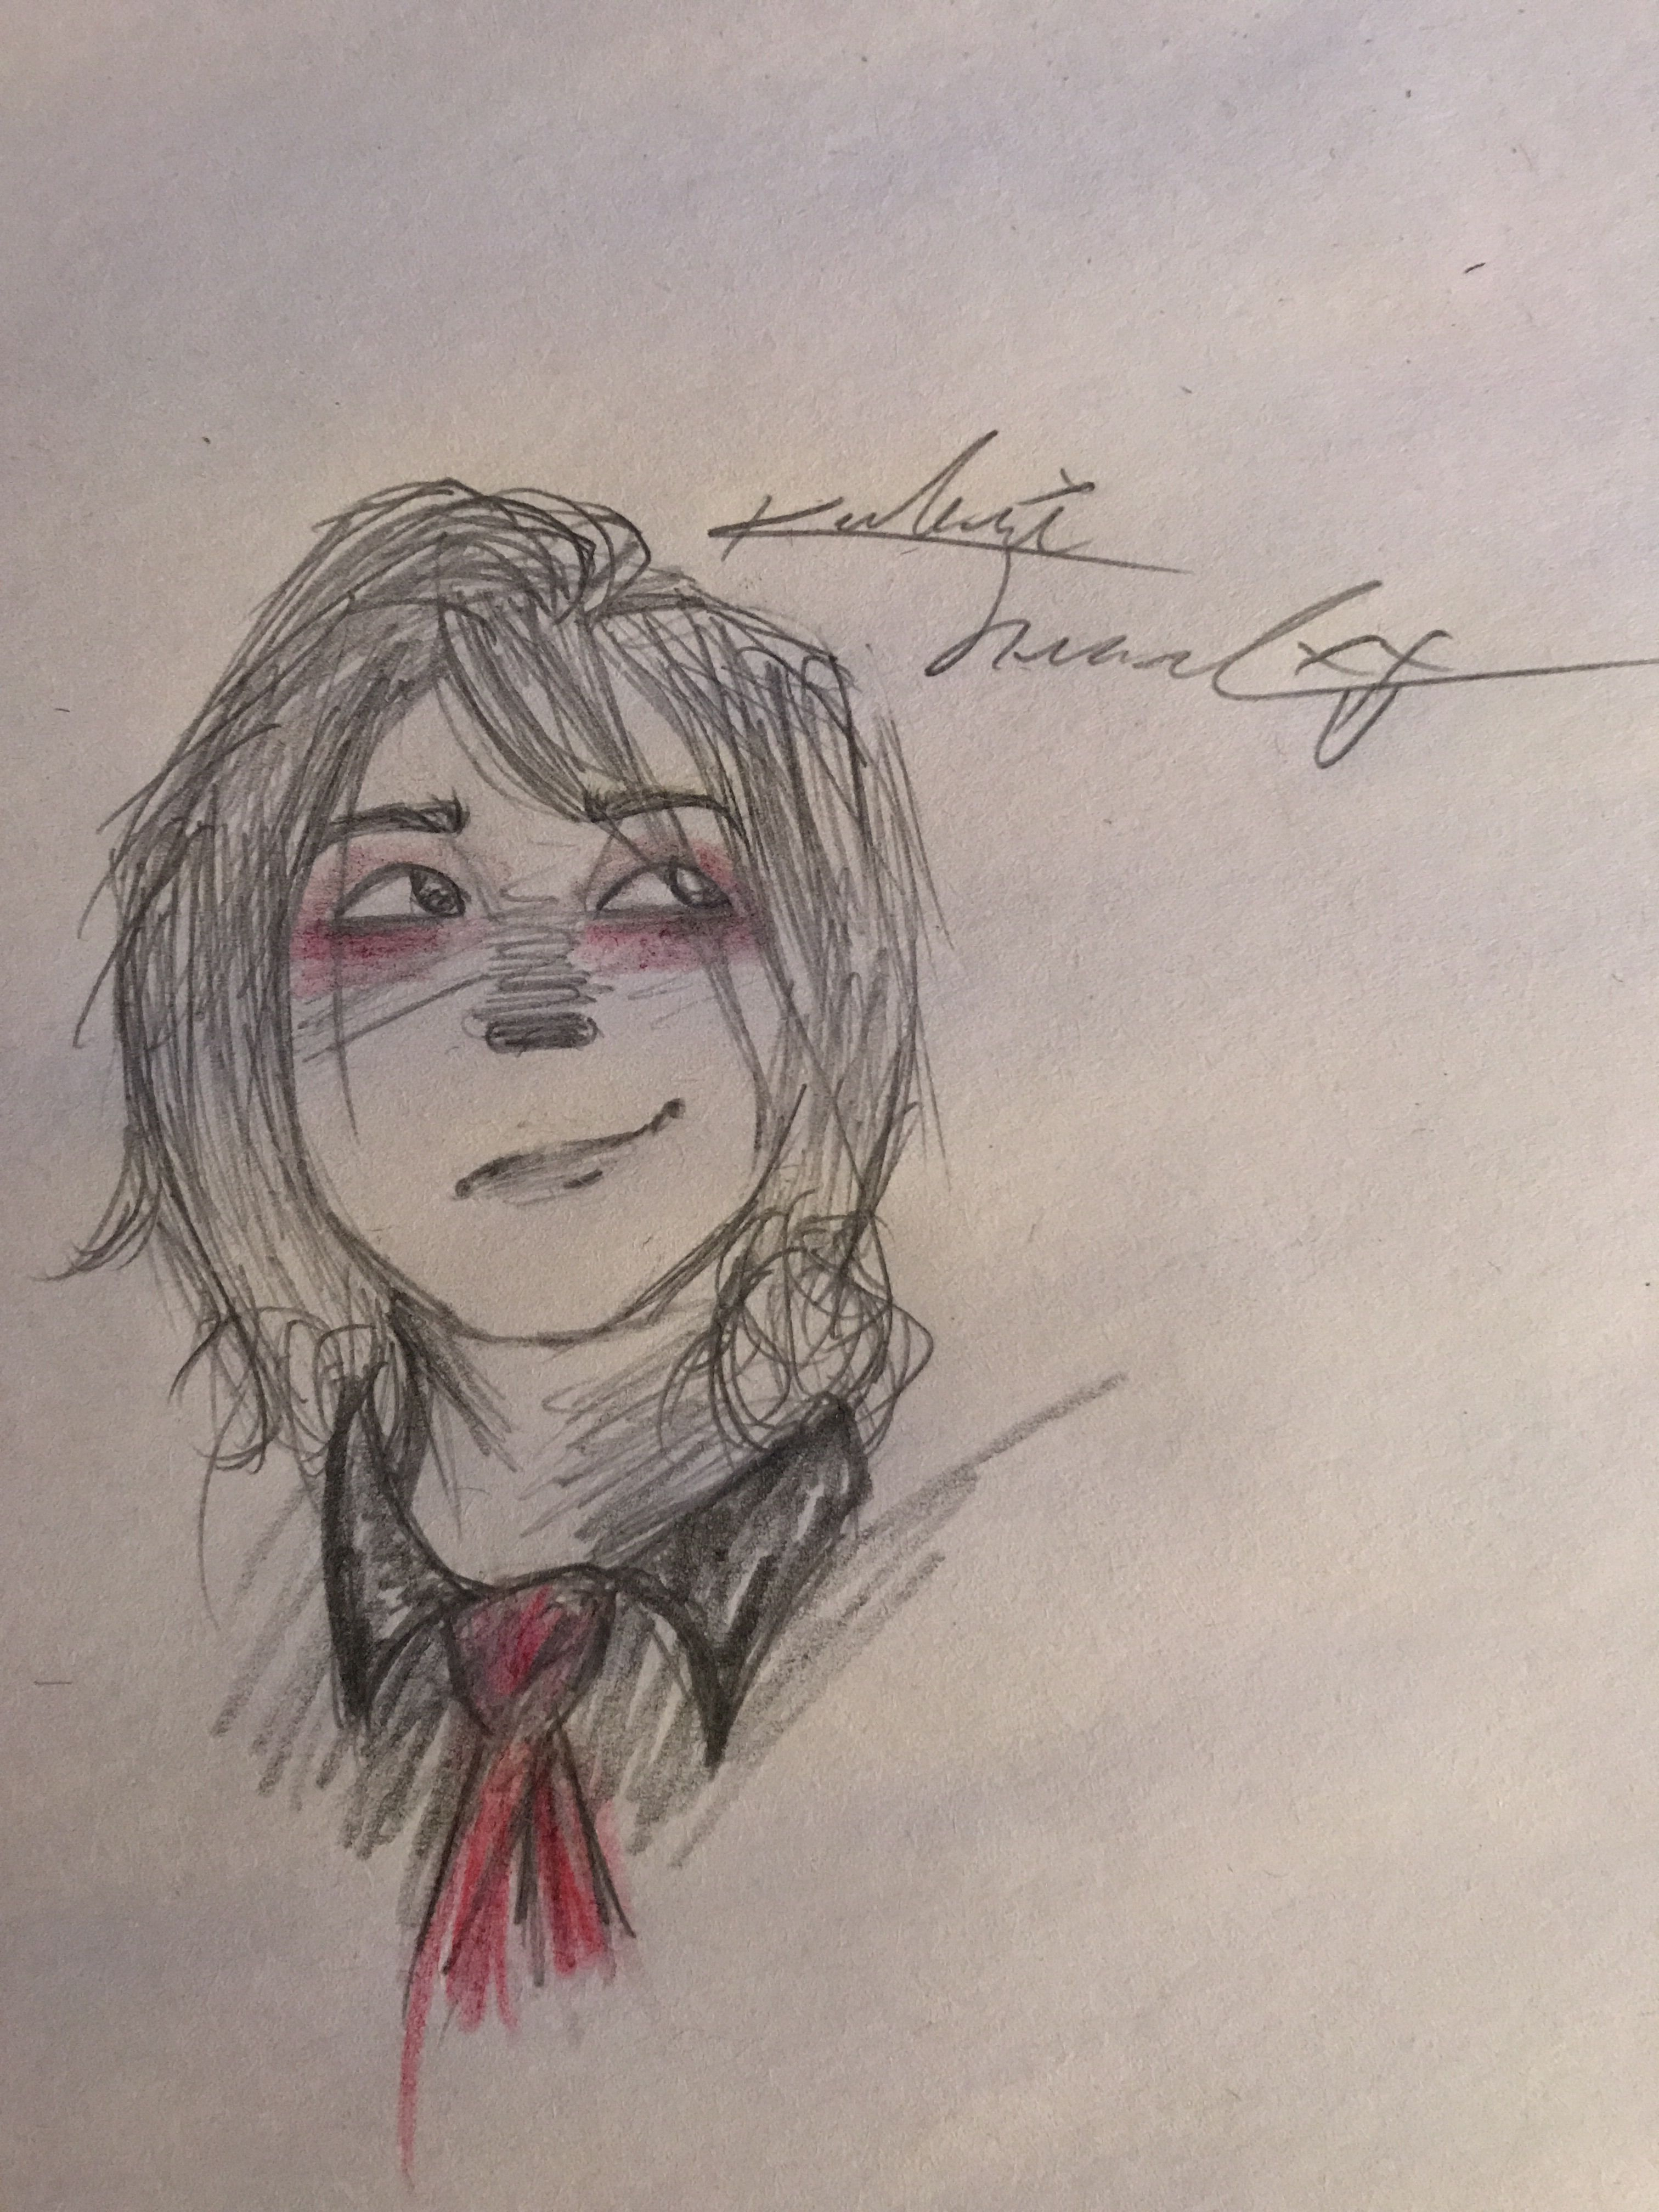 My shitty Gerard Way art<<< lies this is amazing<<<seriously this is so beautiful